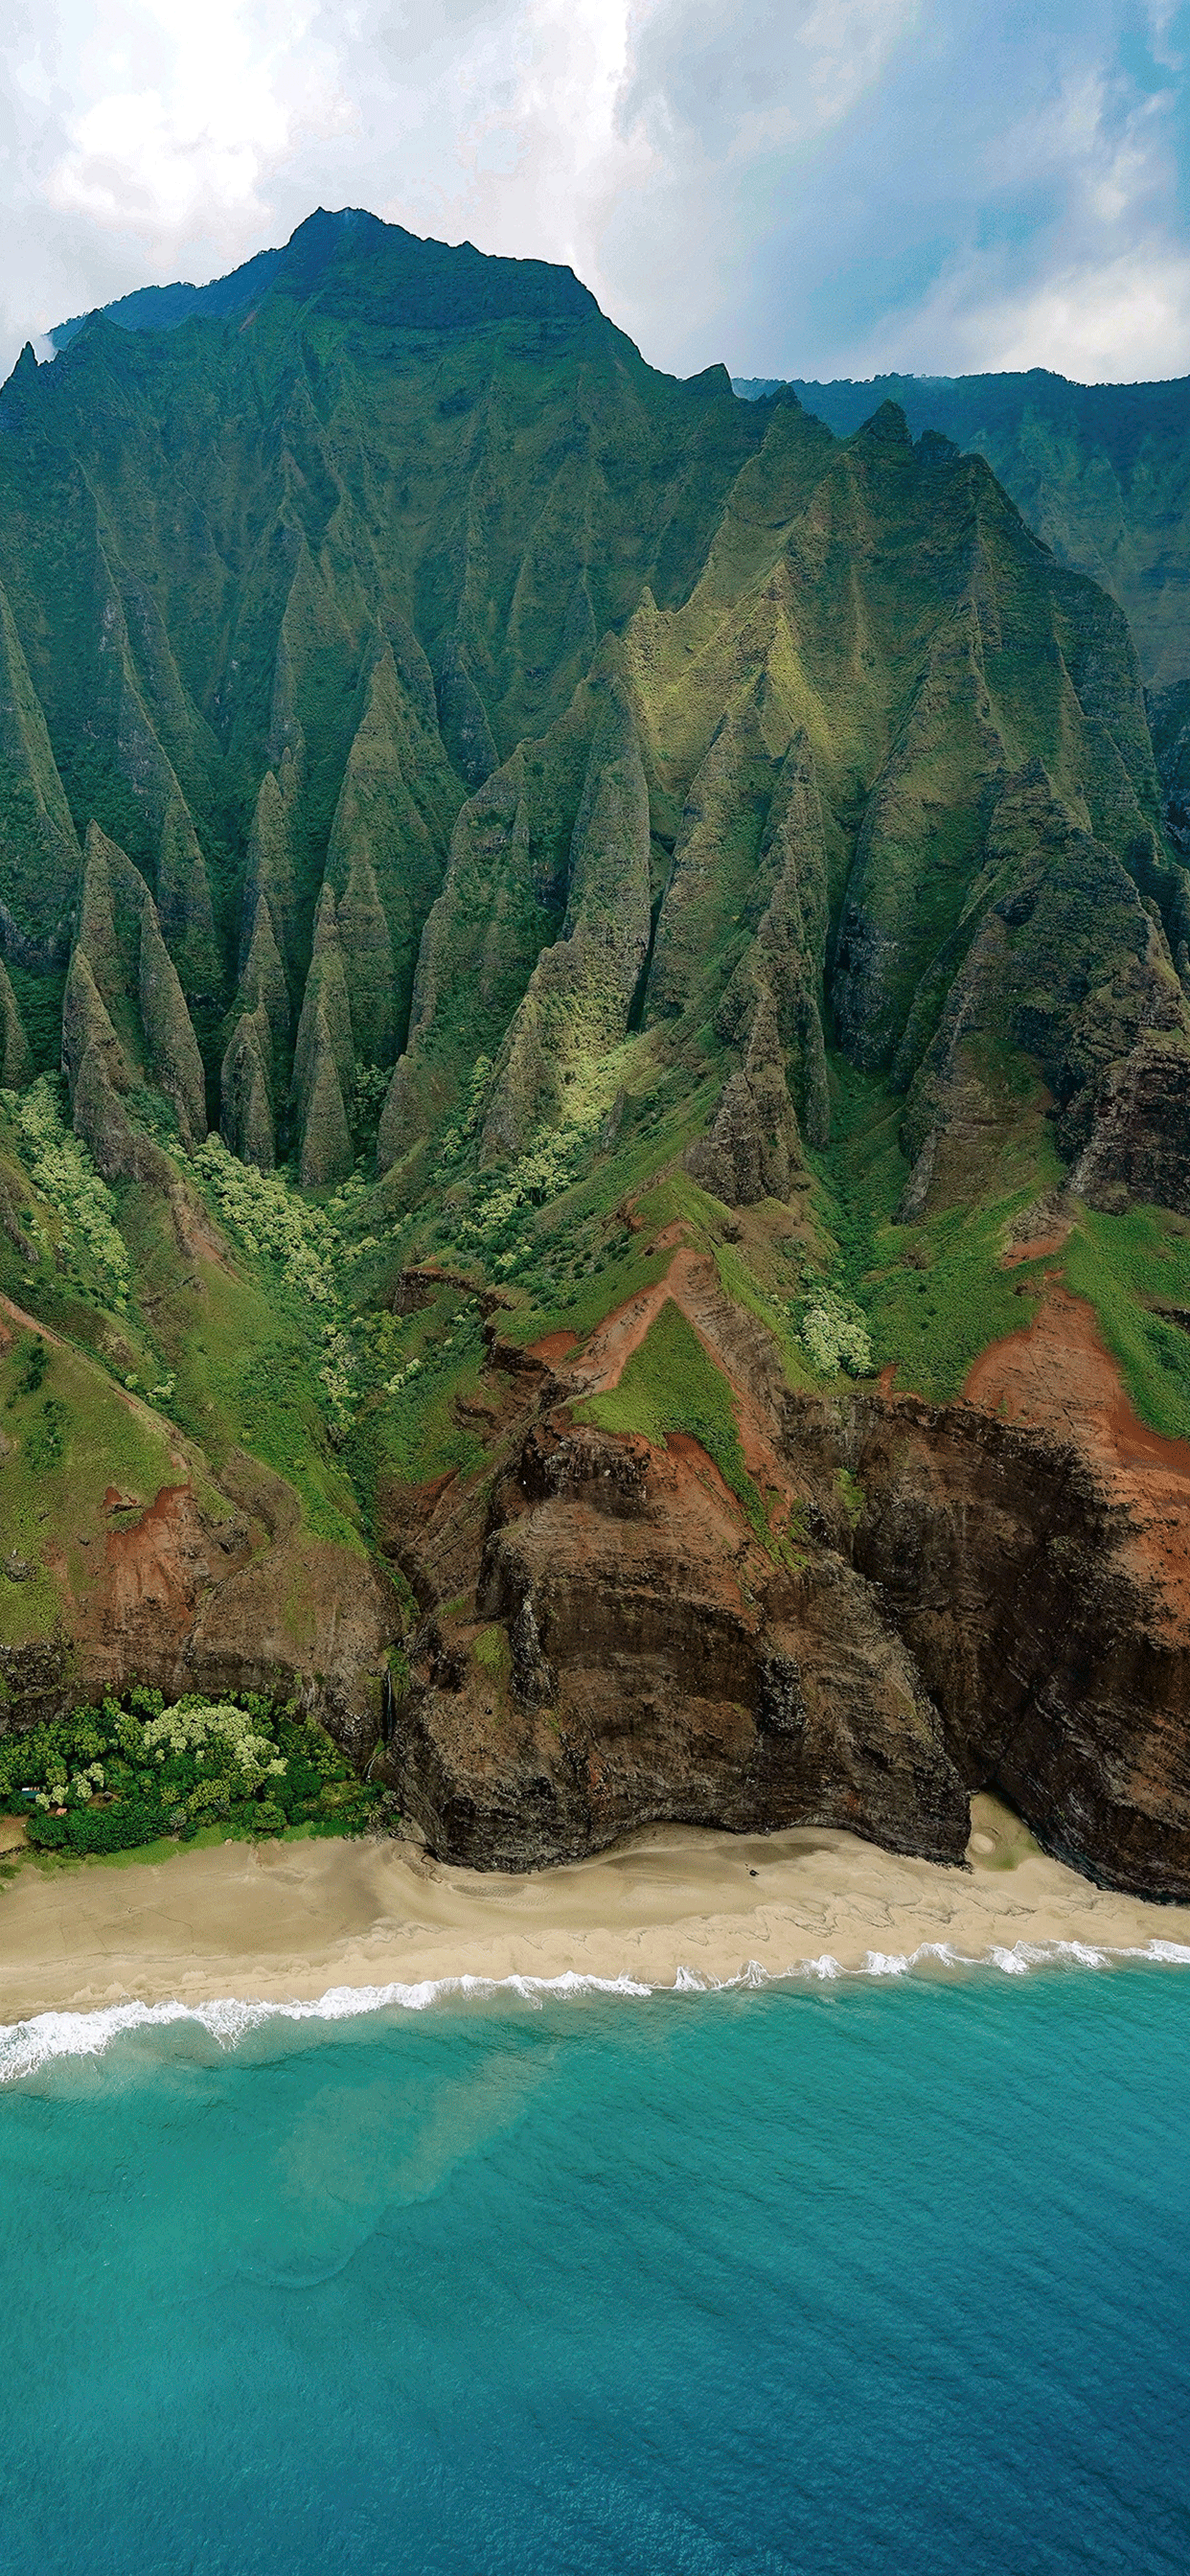 iPhone wallpaper Nā Pali Coast mountains Nā Pali Coast